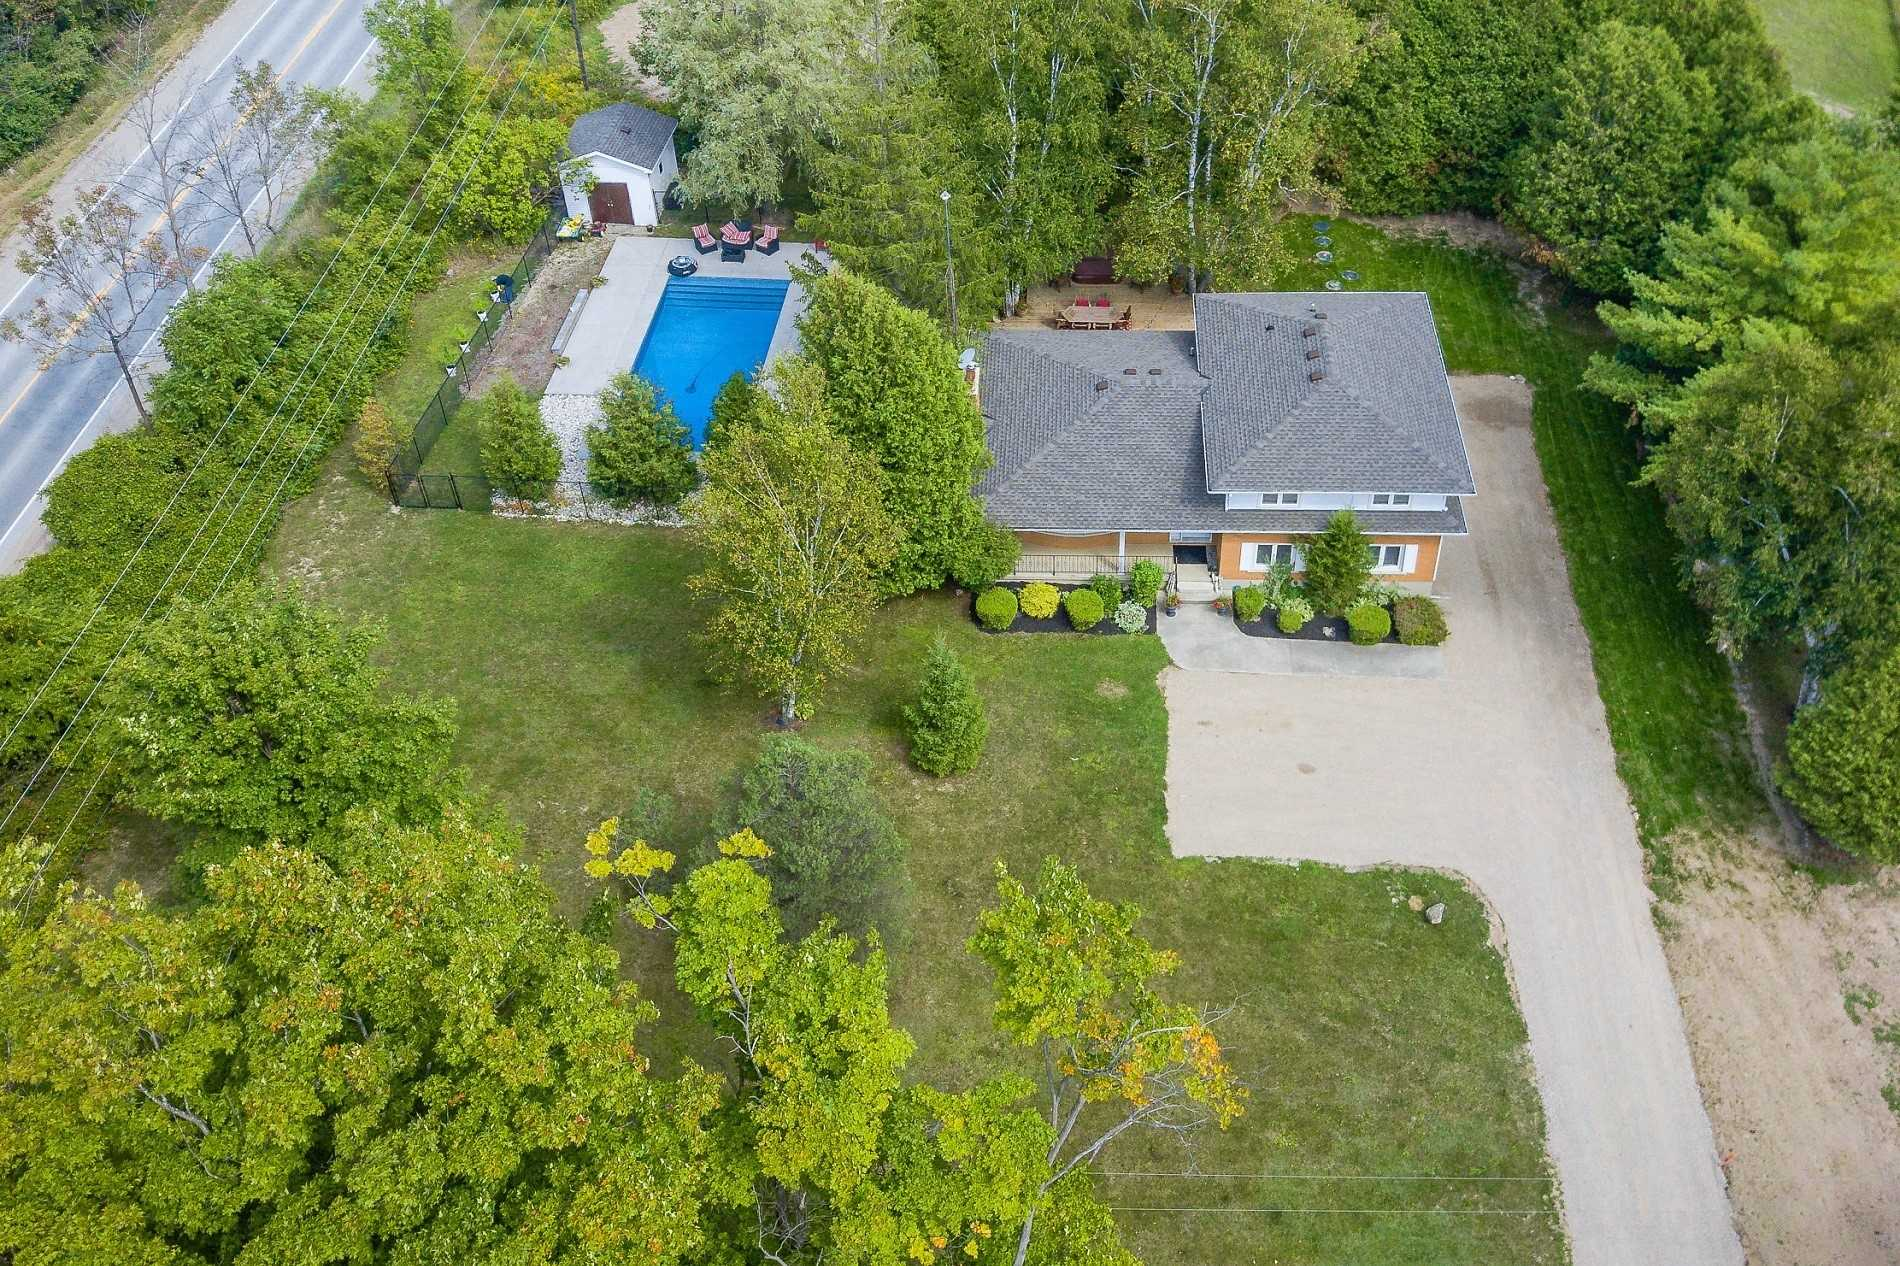 For Sale: 4467 Sideroad 20 Road, Puslinch, ON   4 Bed, 3 Bath House for $849900.00. See 20 photos!